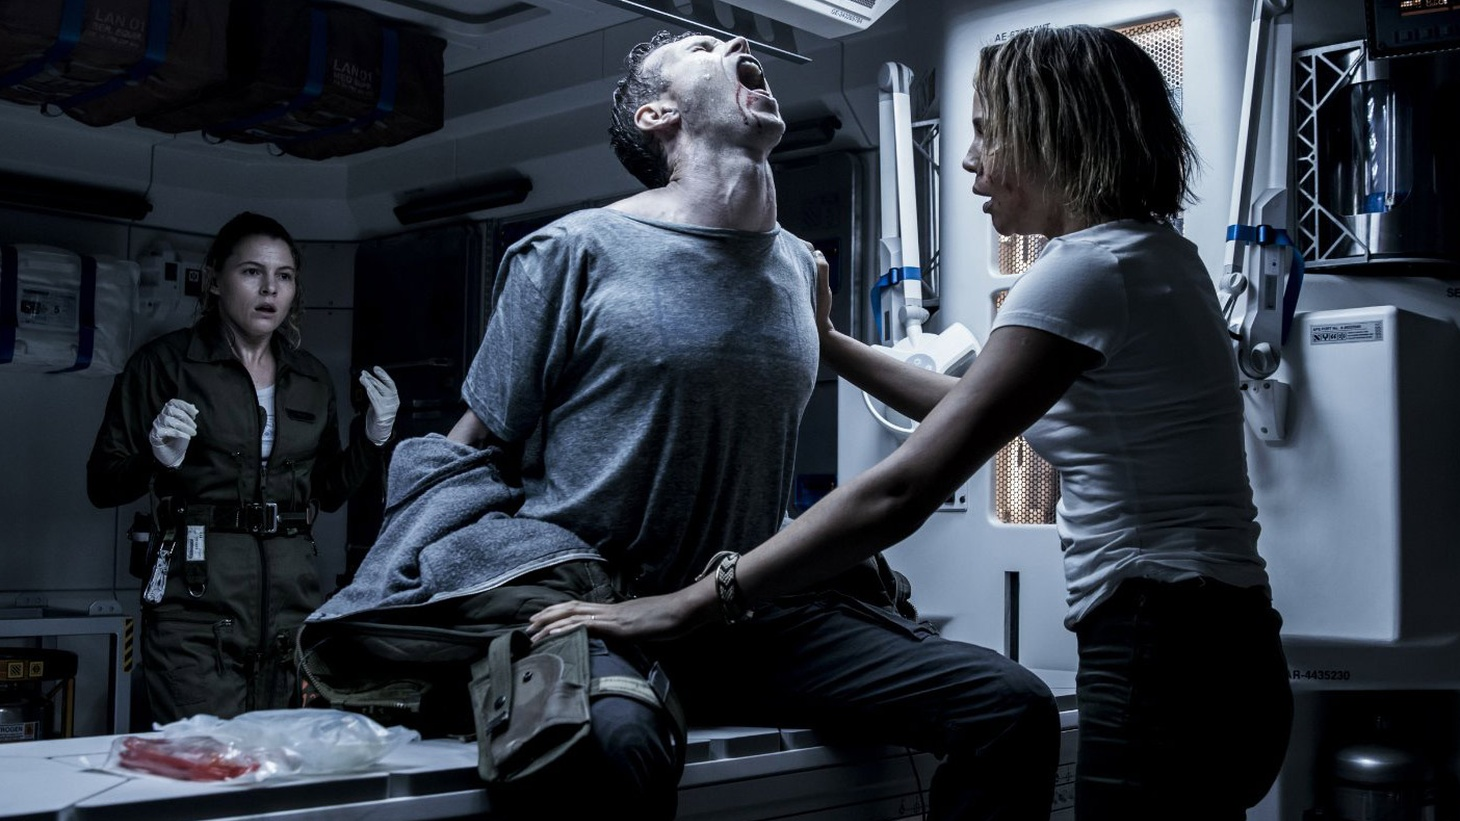 The action sequences of Alien: Covenant give satisfaction, and the supersmart, superambitious android element provides ample food for thought and plenty of cause for worry, given what machine-learning already is and soon it soon will be.